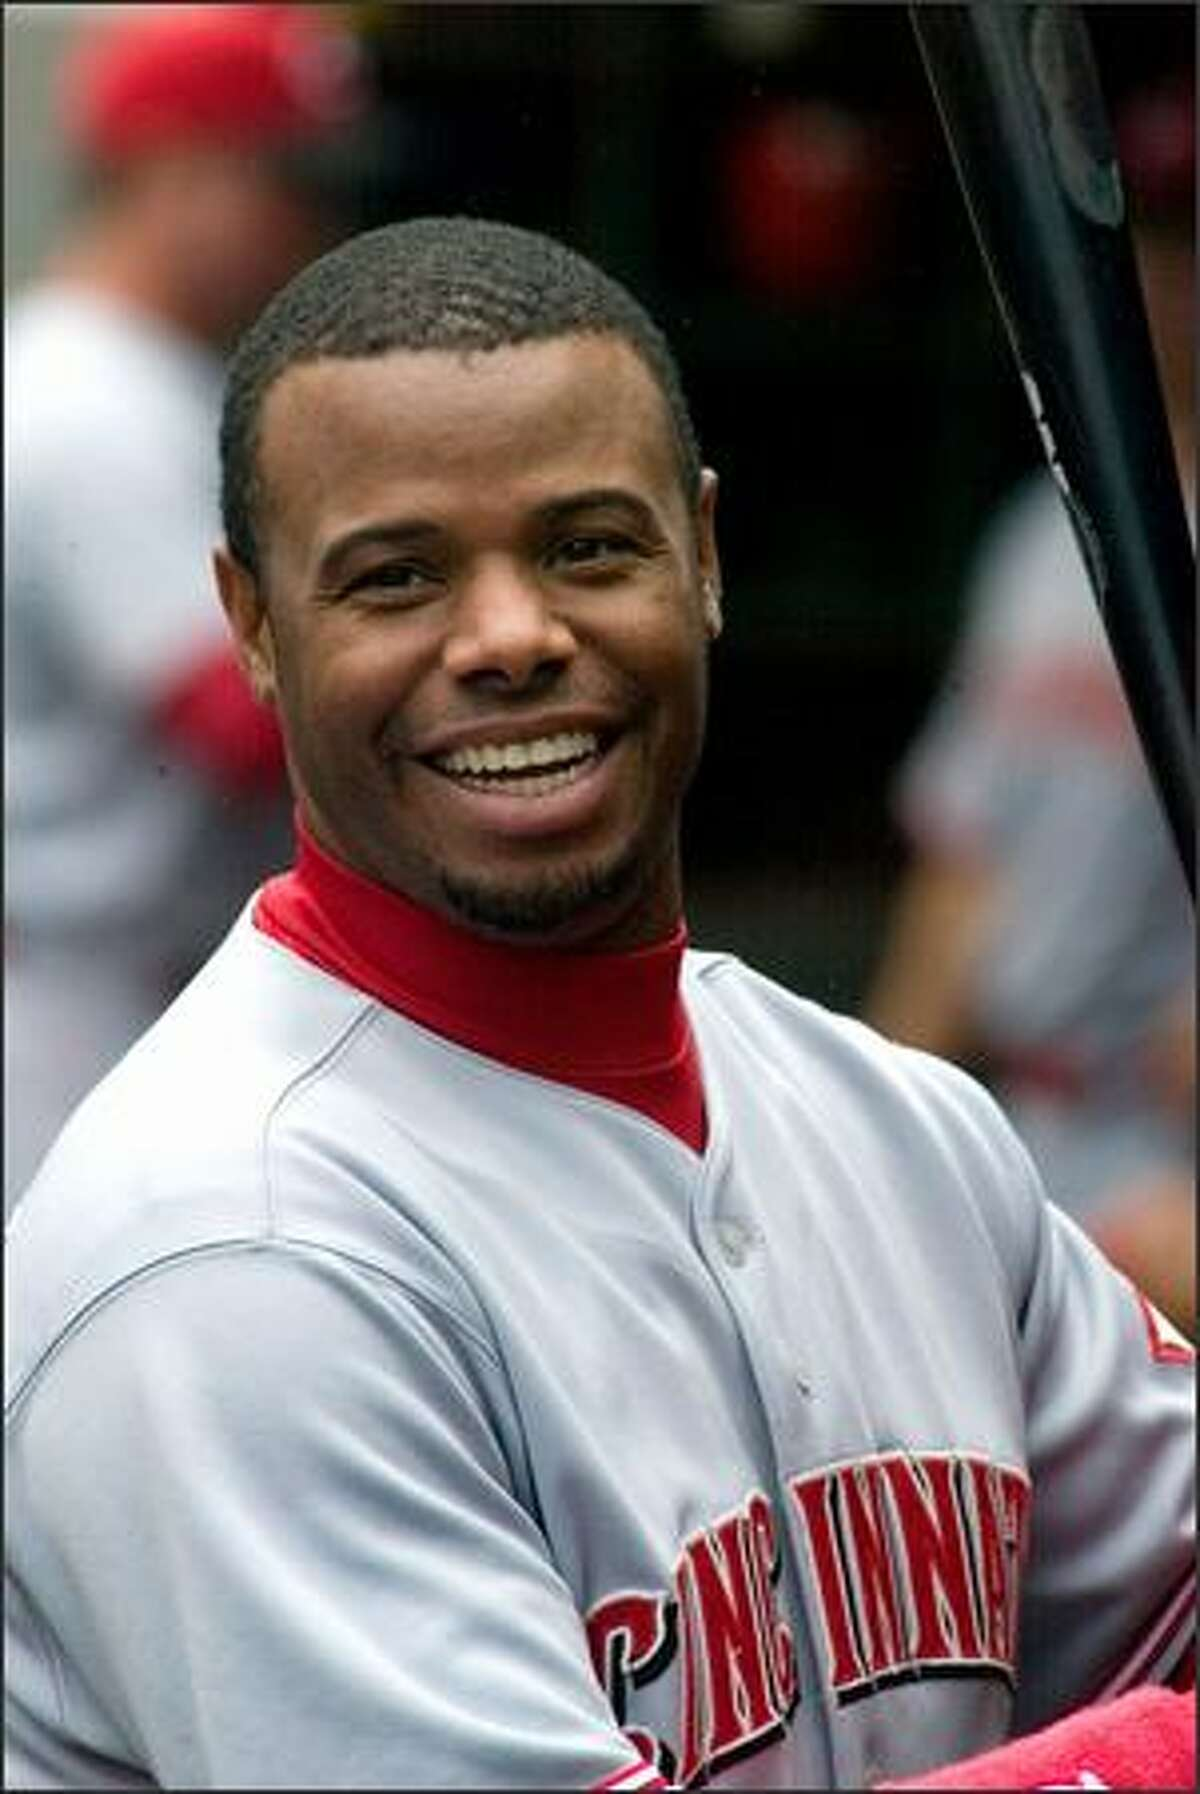 Ken Griffey Jr., smiles before his team, the Cincinnati Reds, take the field against the Mariners.